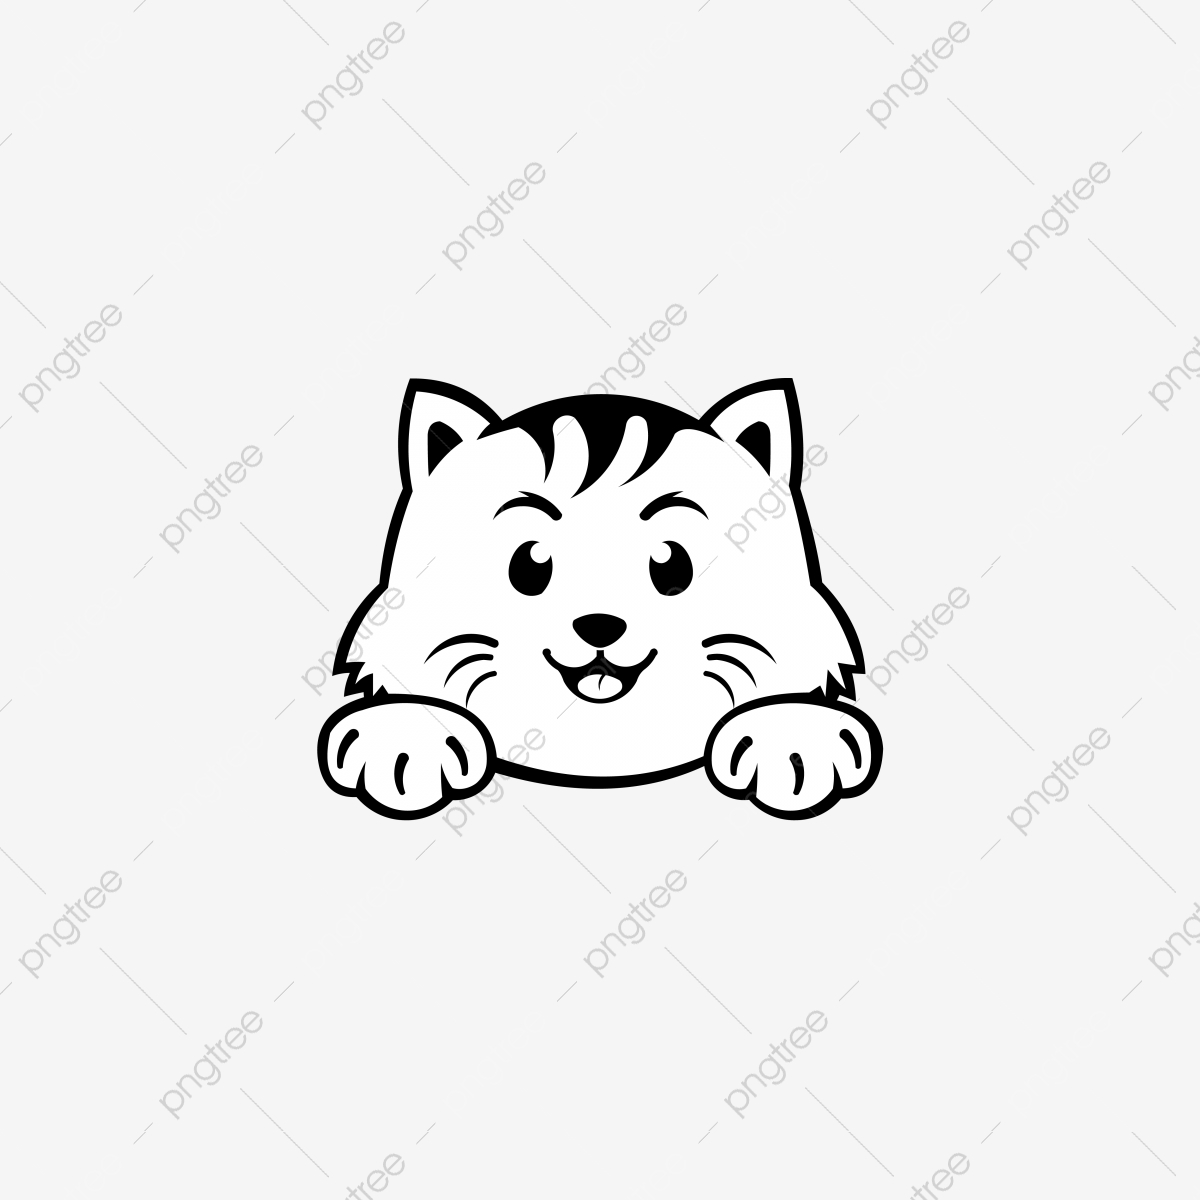 inspiration portrait of a cat cute kitten black white illustration of a cat stylized pet cat head tattoo cat icons cute icons black icons png and vector with transparent background for free https pngtree com freepng inspiration portrait of a cat cute kitten black white illustration of a cat stylized pet cat head tattoo 5270975 html